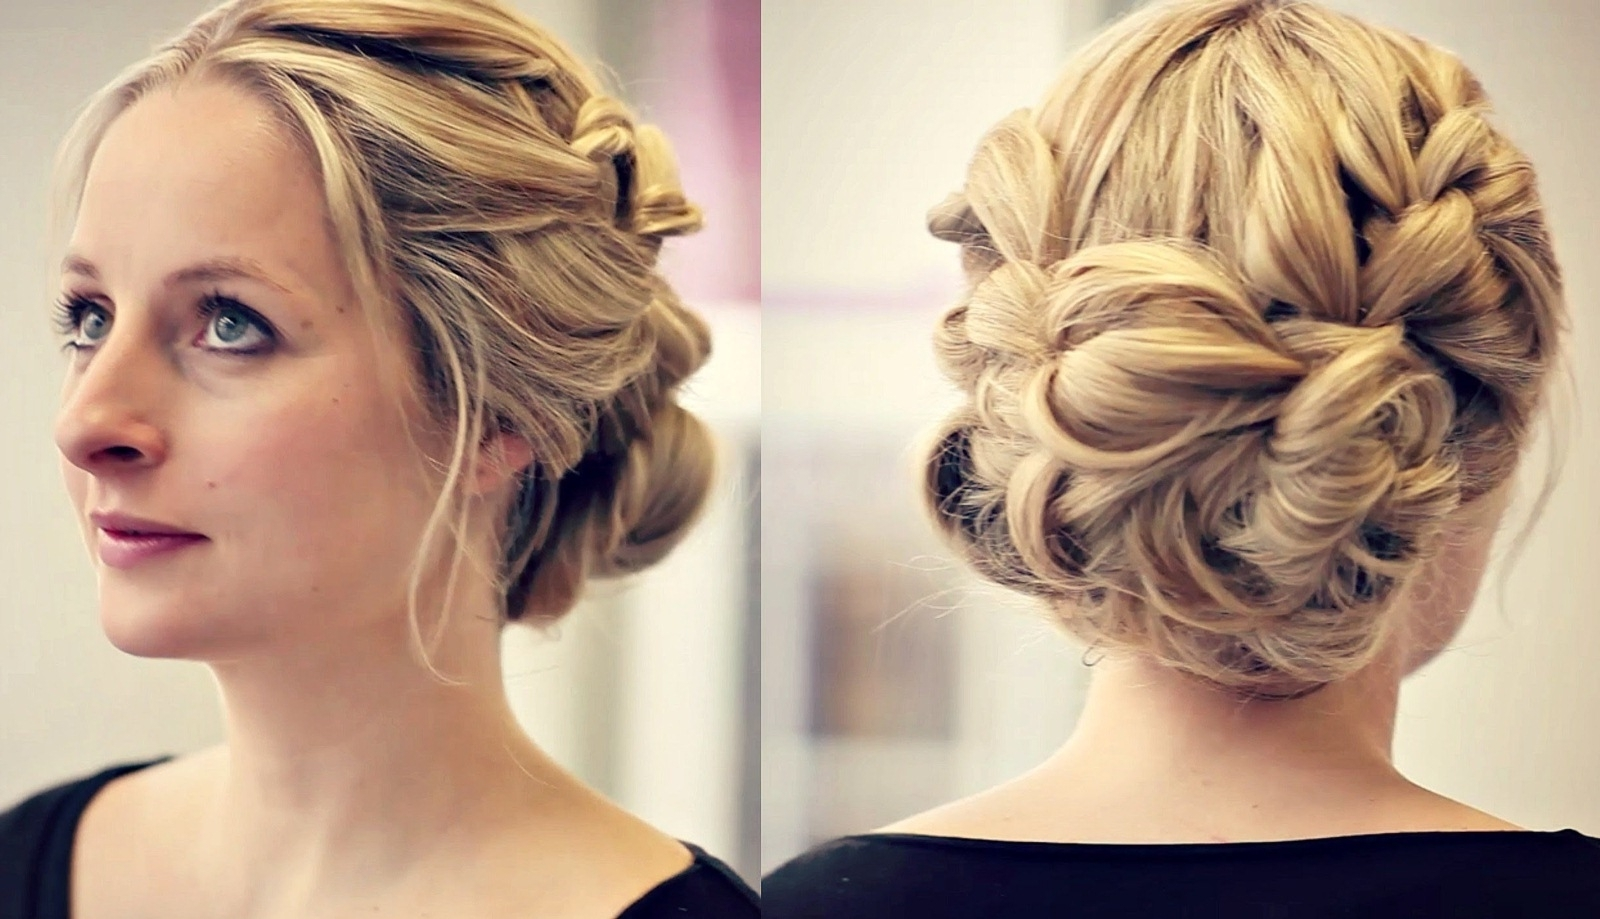 Updo Hairstyles For Weddings Mother Of The Bride – Hairstyle For For Updo Hairstyles For Short Hair For Wedding (View 11 of 15)